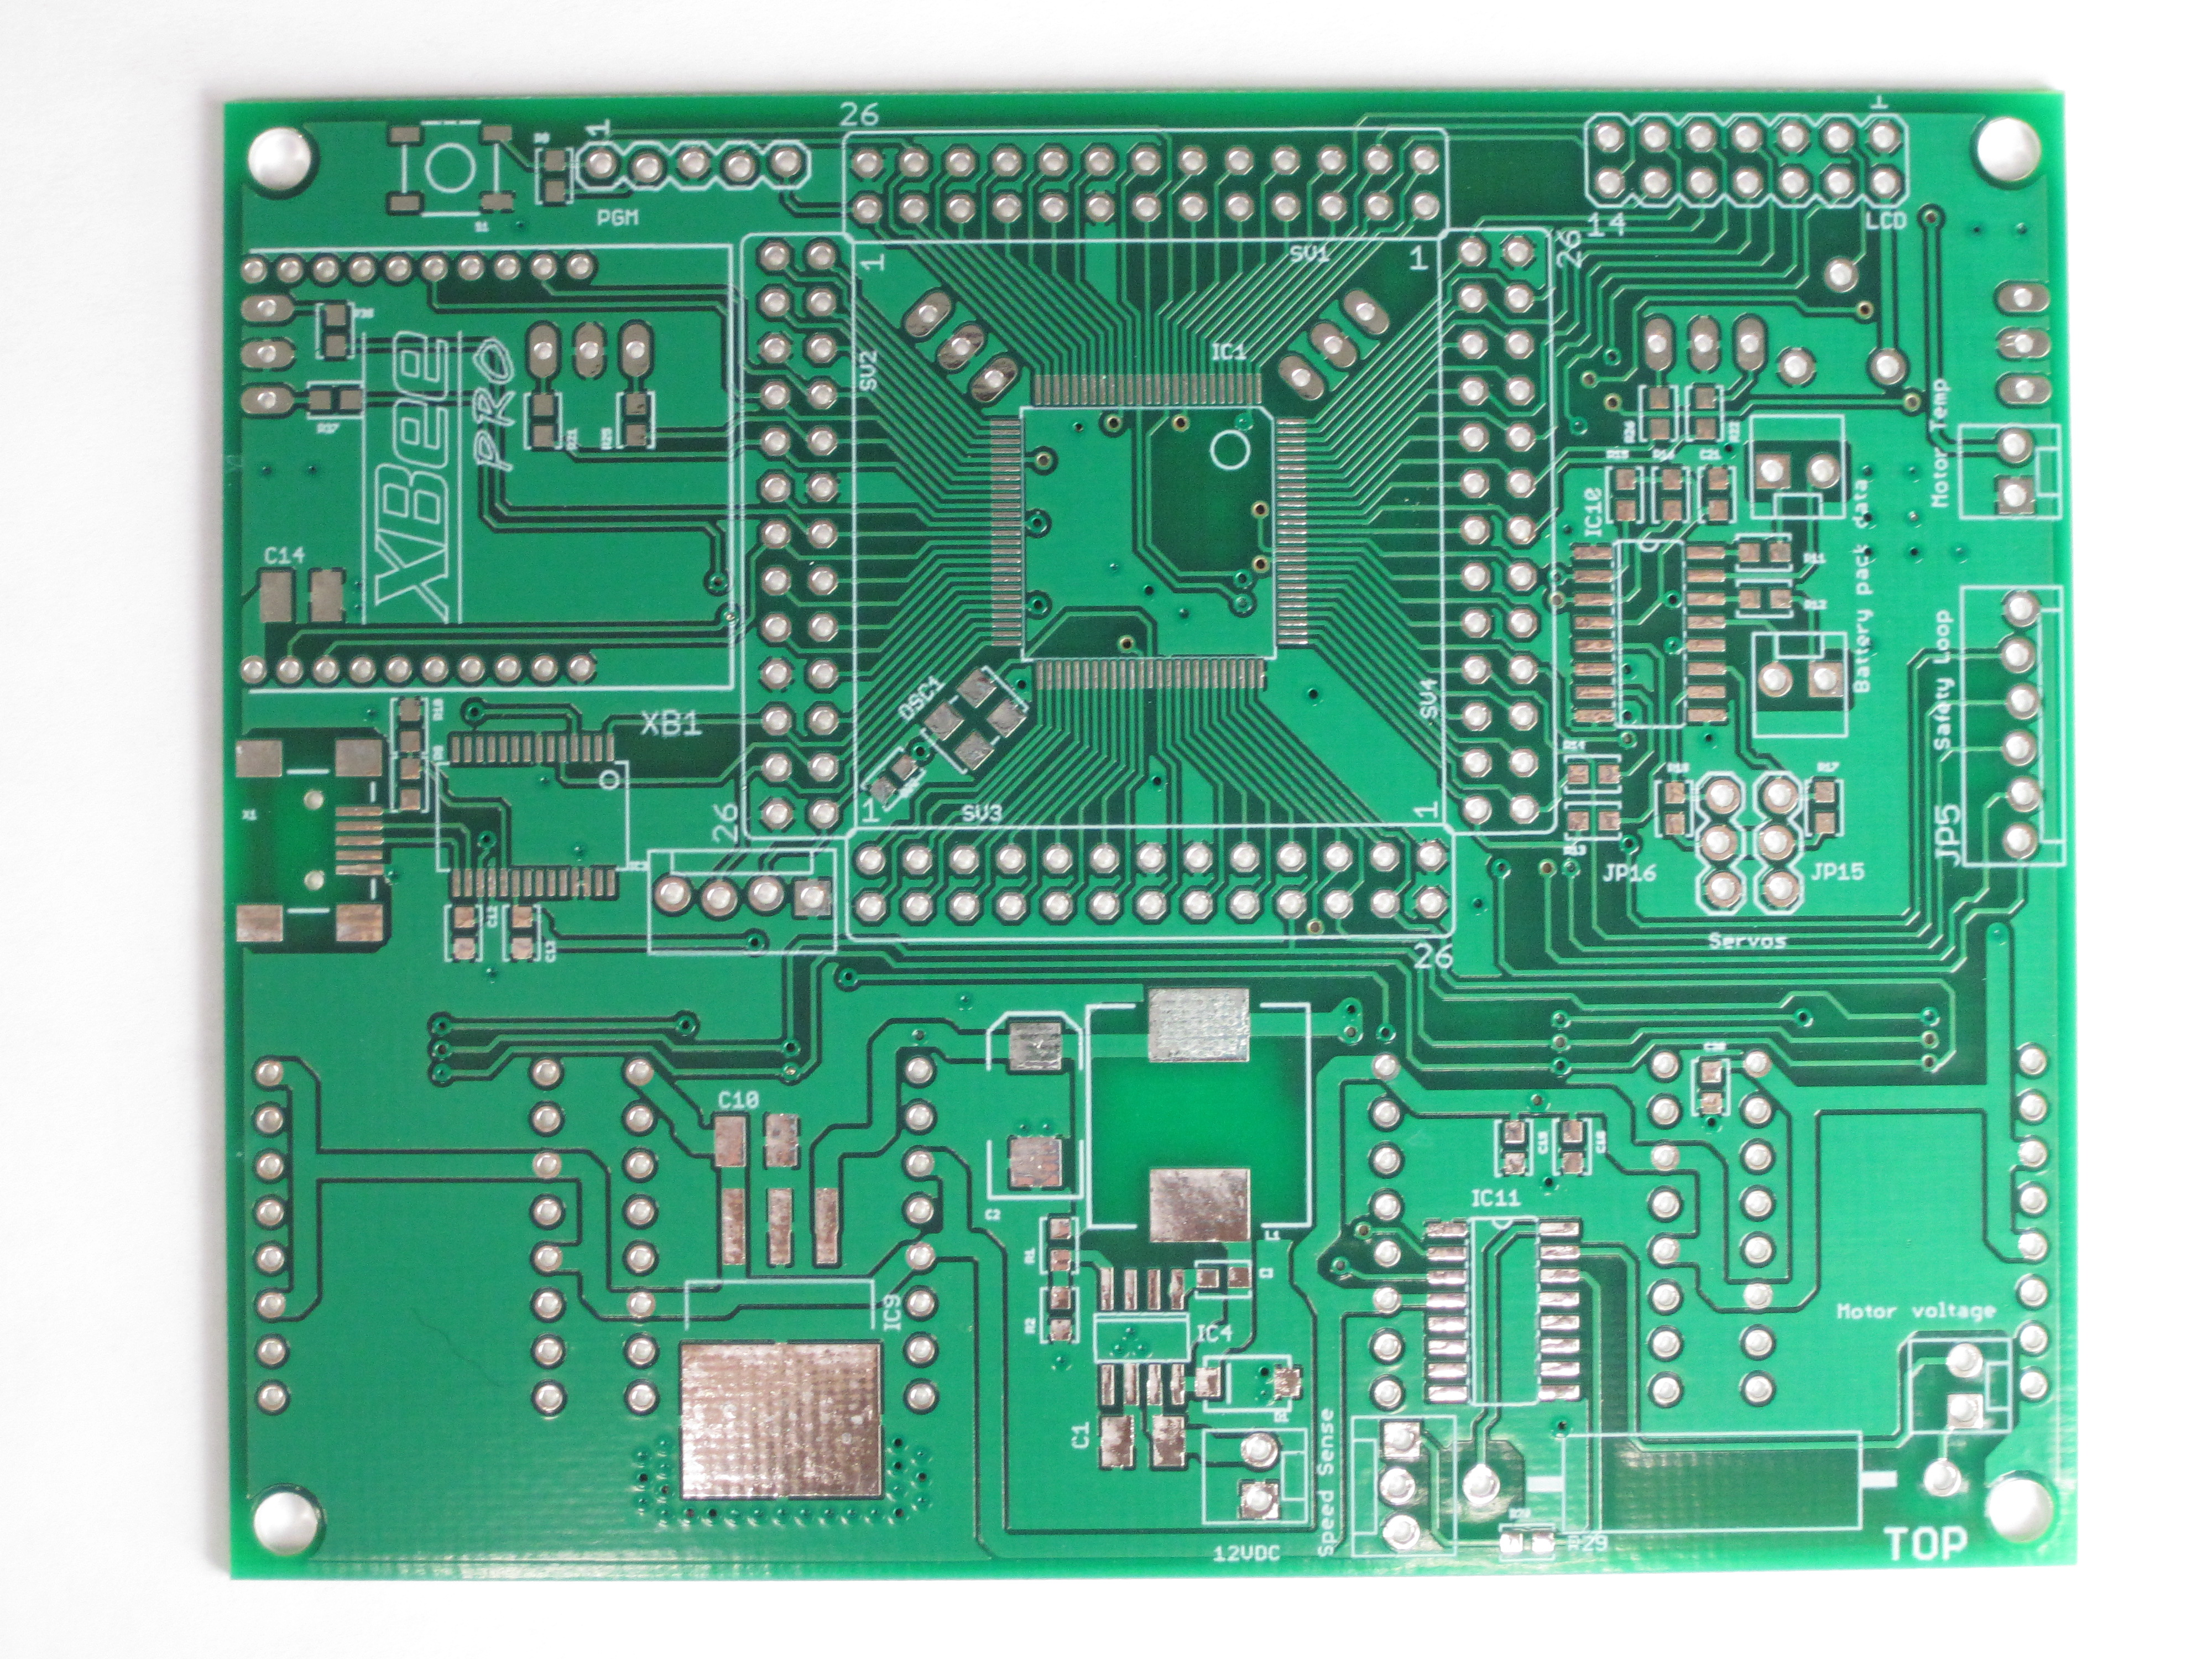 Ben Laskowskis Lab Notebook Pushbutton Completes The Path For Current Flow And Energizes Motor Unfortunately Box Of Sample Parts Containing High Efficiency Switchmode Regulator To Complete Power Supply Was Located At